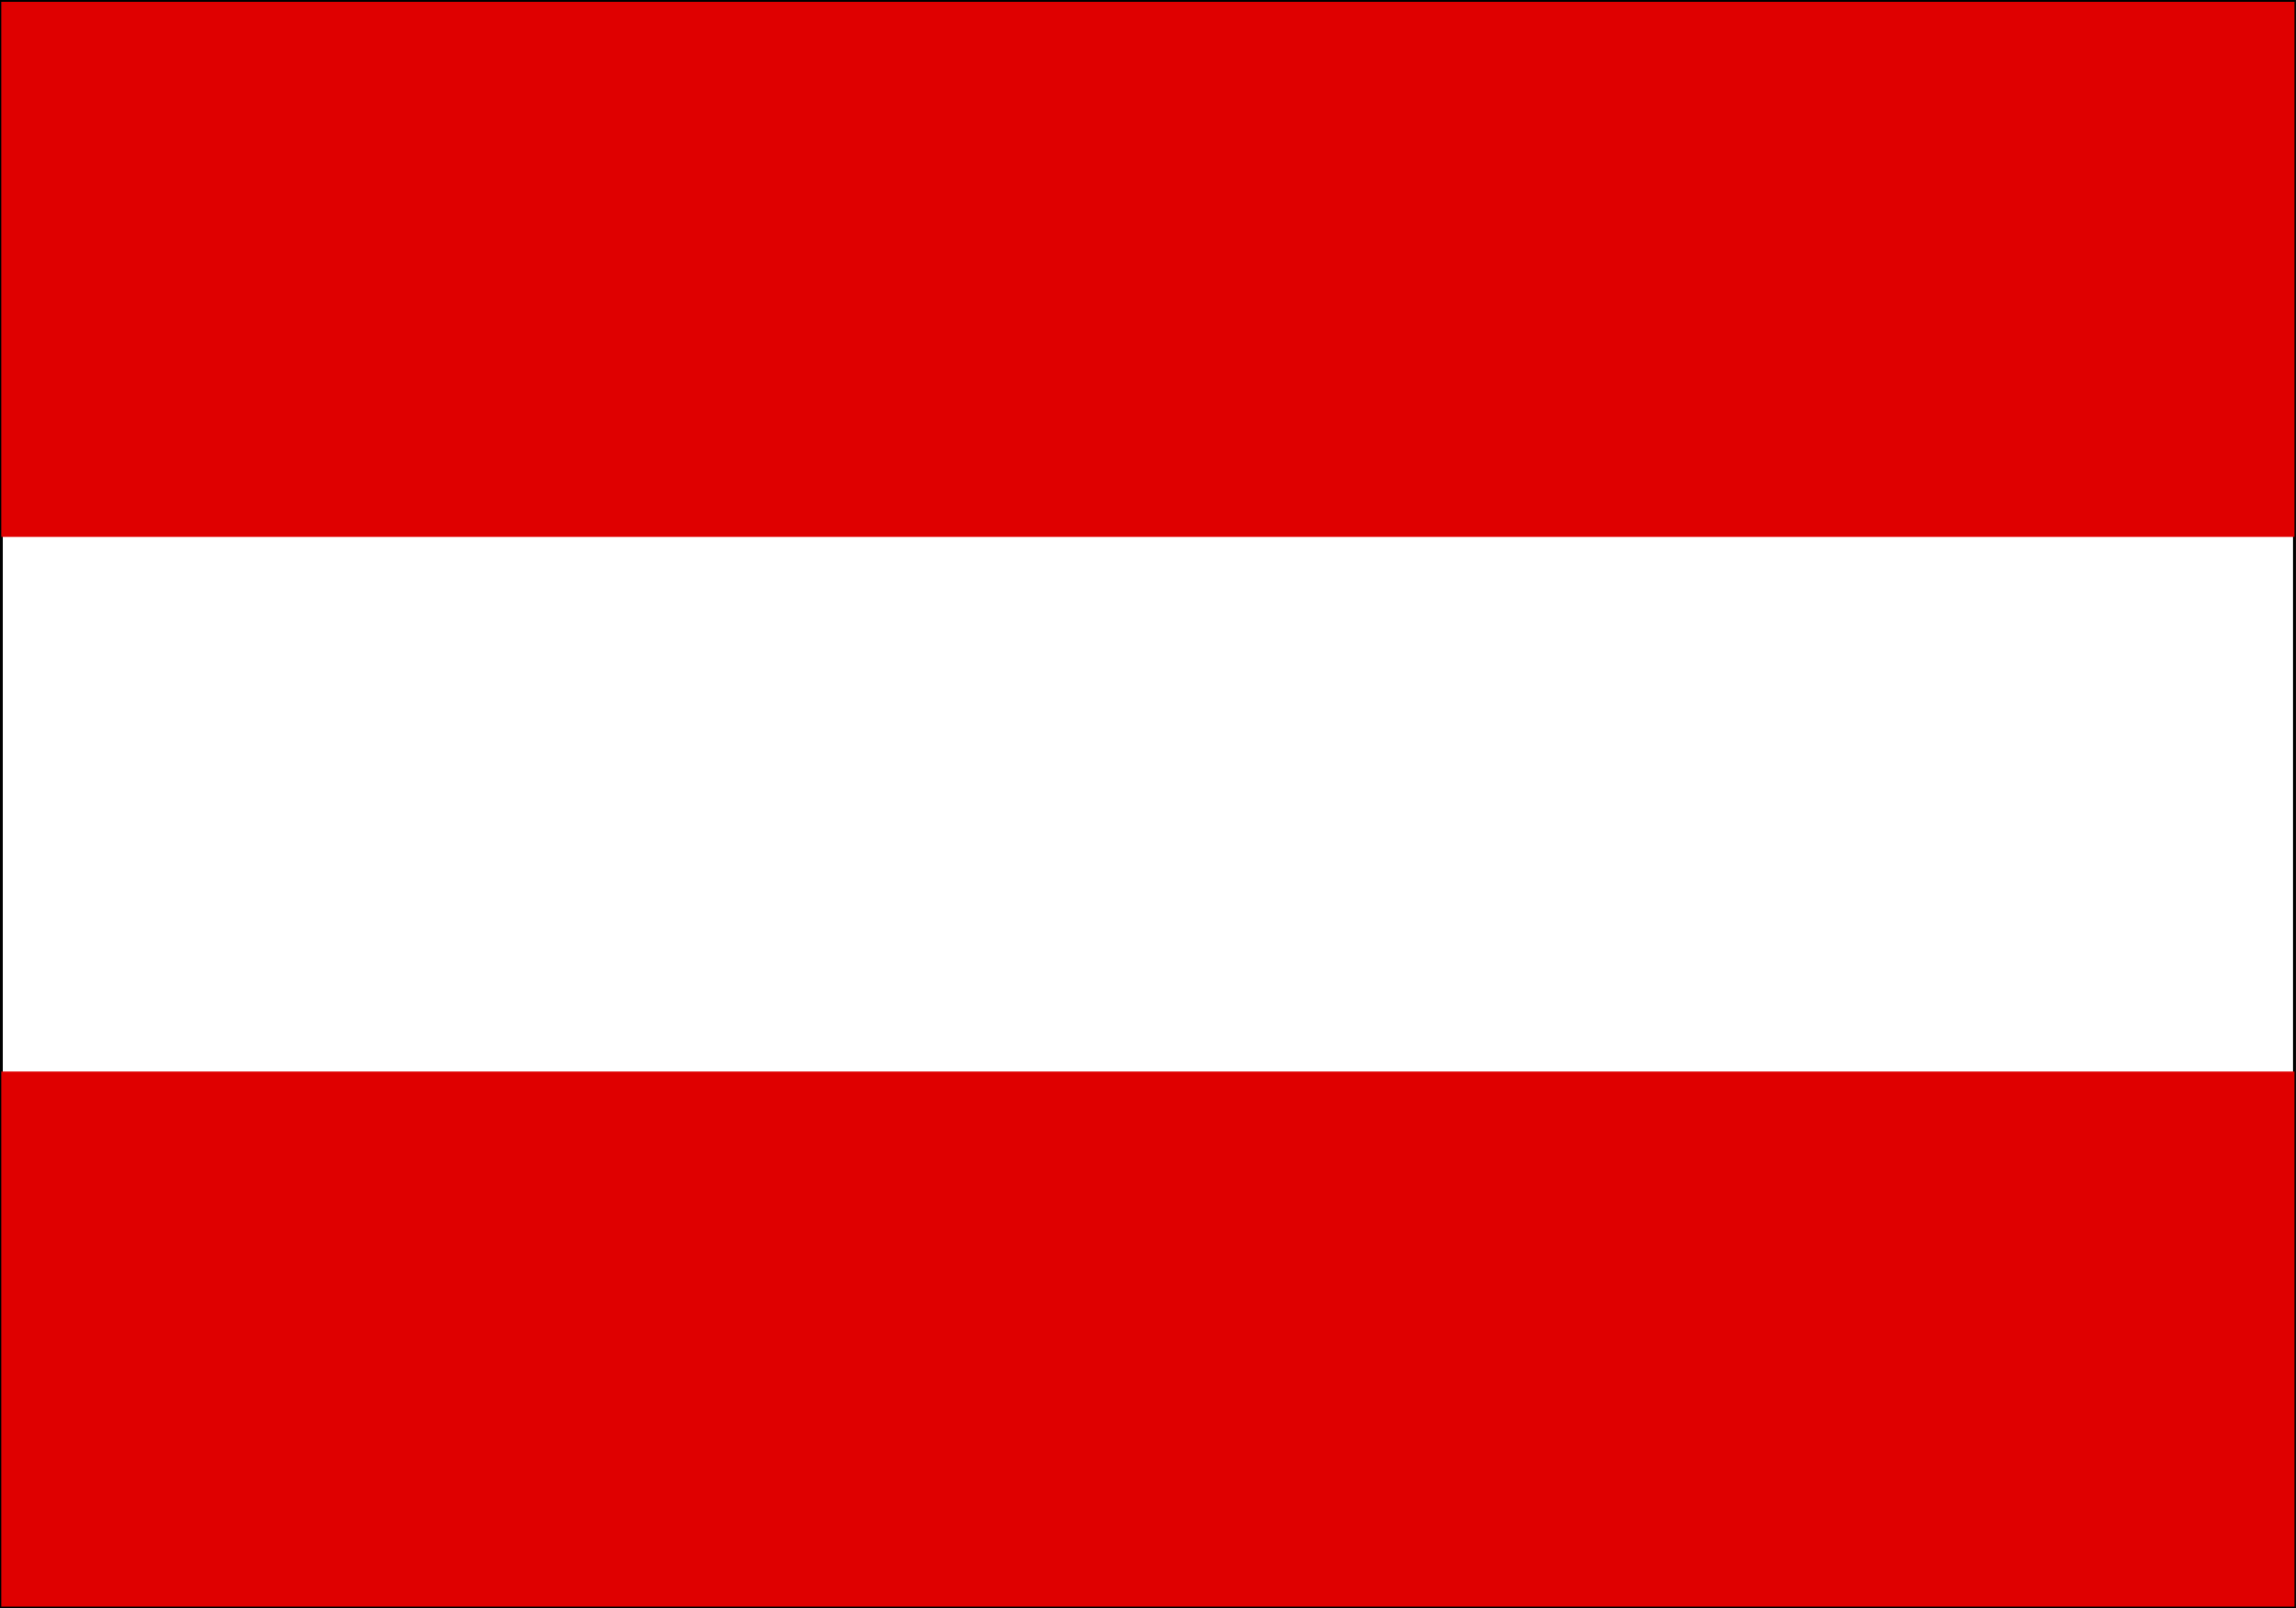 Flag of Austria by Anonymous